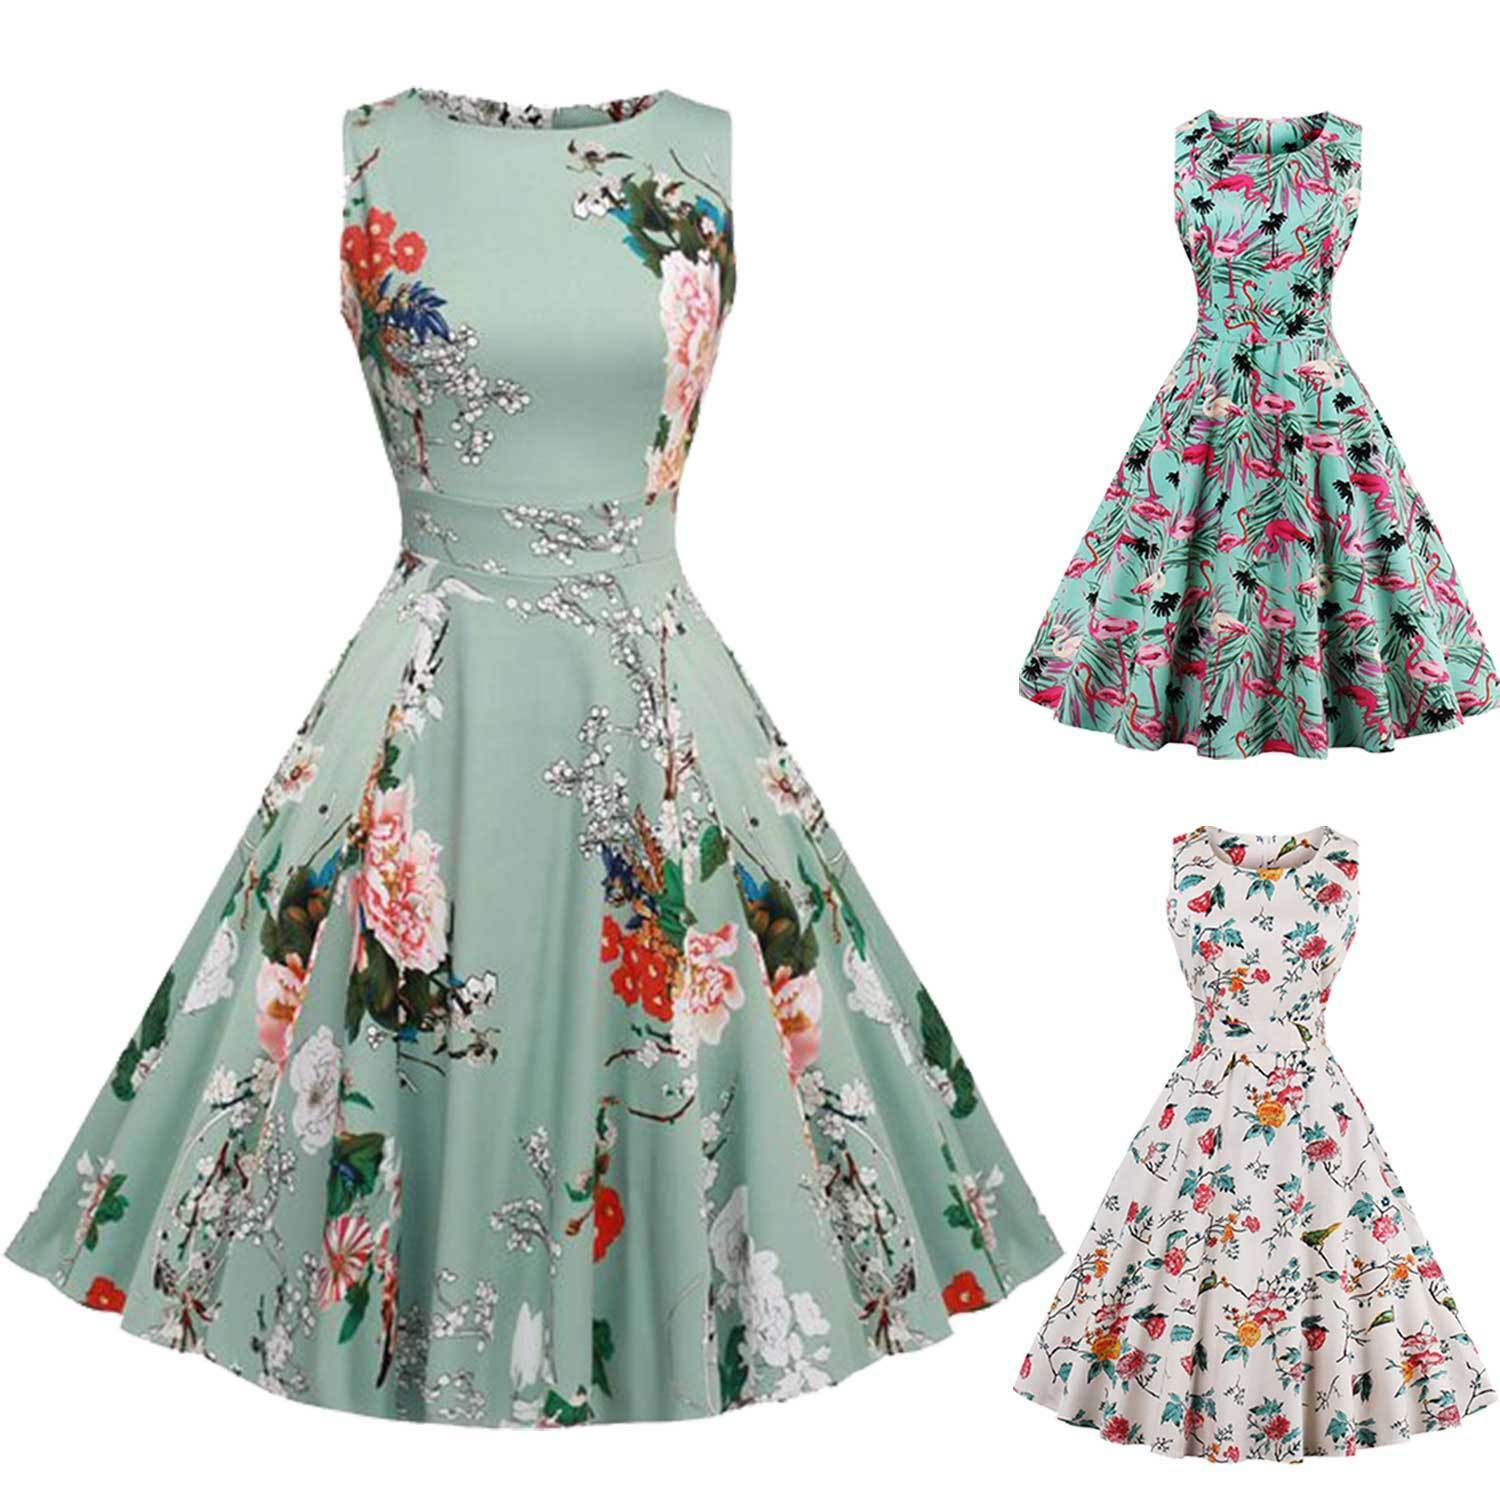 Dresses , Womens Clothing , Clothes, Shoes & Accessories